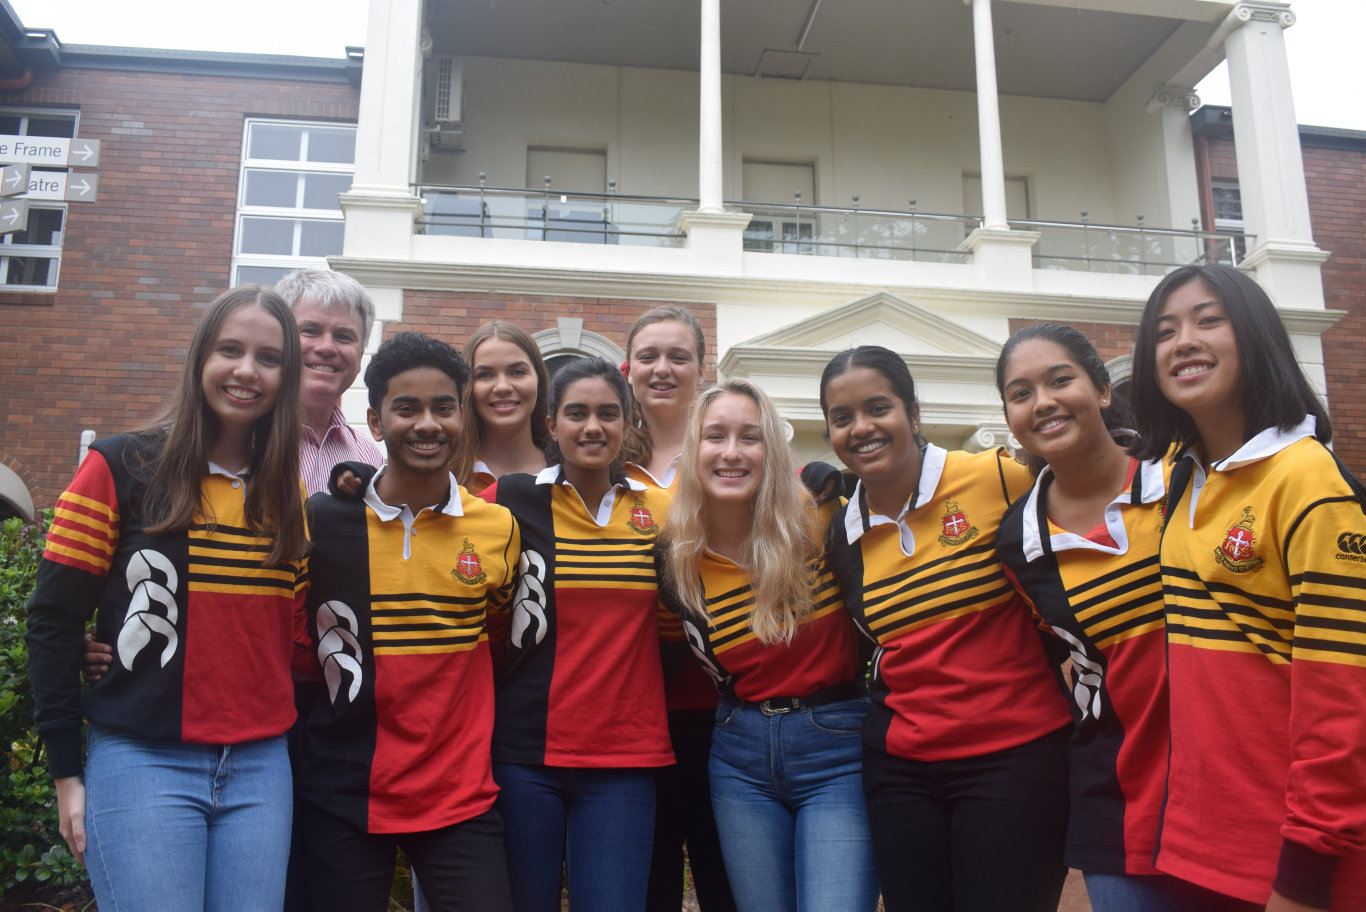 OP1 STUDENTS: Hannah Woods (left), Dr Phillip Moulds, Banuka Ralapanawa, Annabel Flockhart, Pooja Arumugam, Neeve Saw, Olivia Germann-De Wet, Hamsika Bontula, Novoneela Siddiqui, Beatrice Torres were proud Rockhampton Grammar Students to receive the top academic honor.